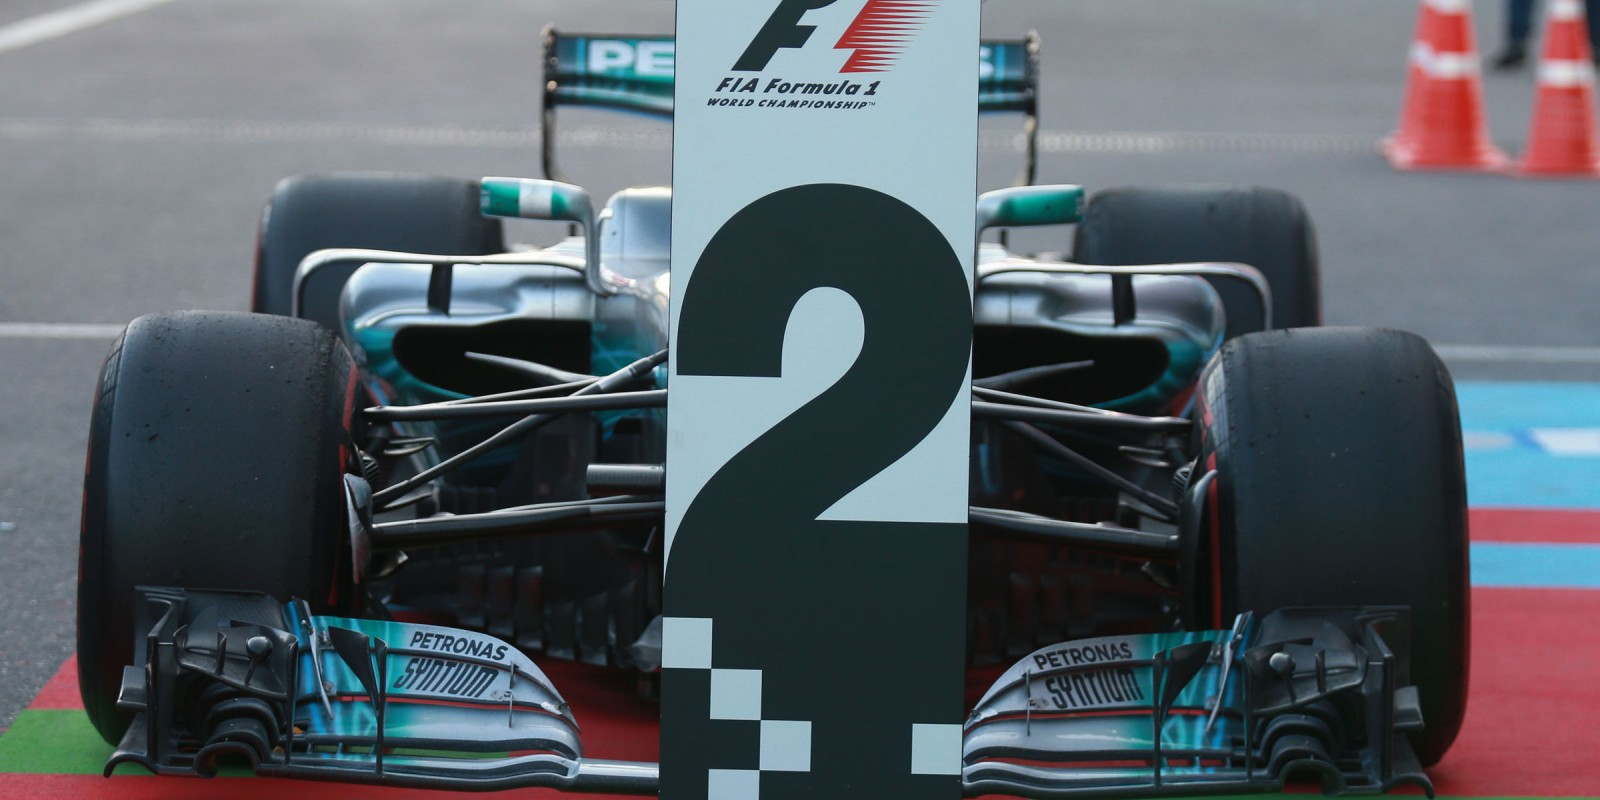 Images from the 2017 Azerbaijan F1 Grand Prix